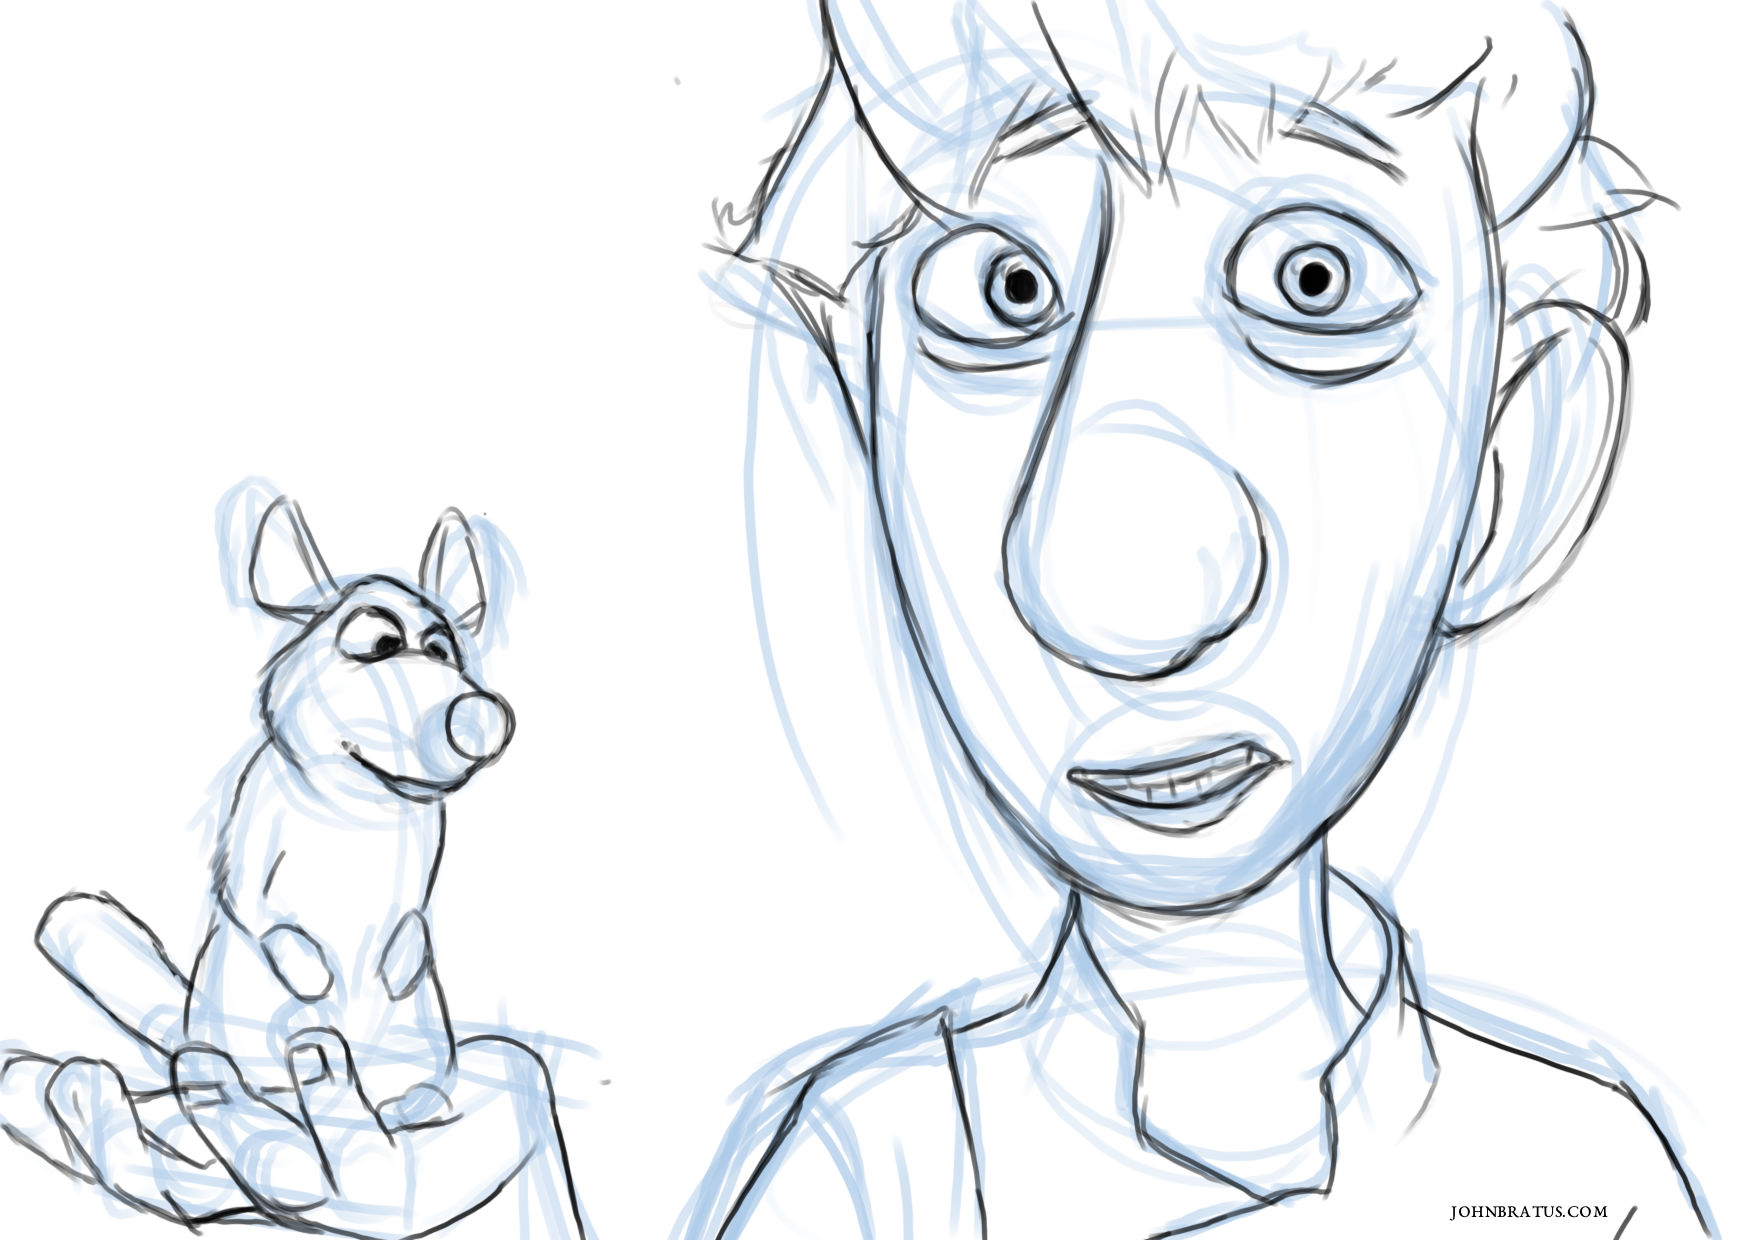 Digital sketch of the main characters from the movie Ratatouille